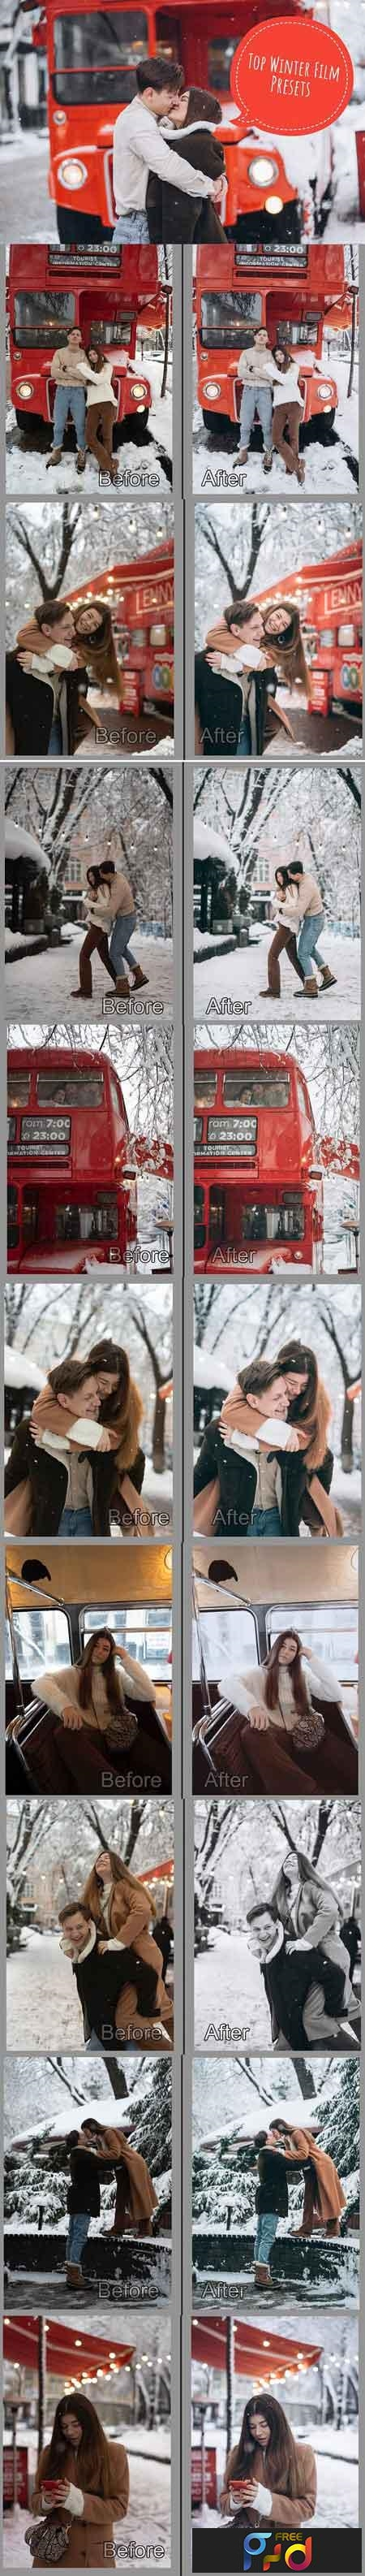 TOP10 Winter Film Lightroom Presets 3297983 1